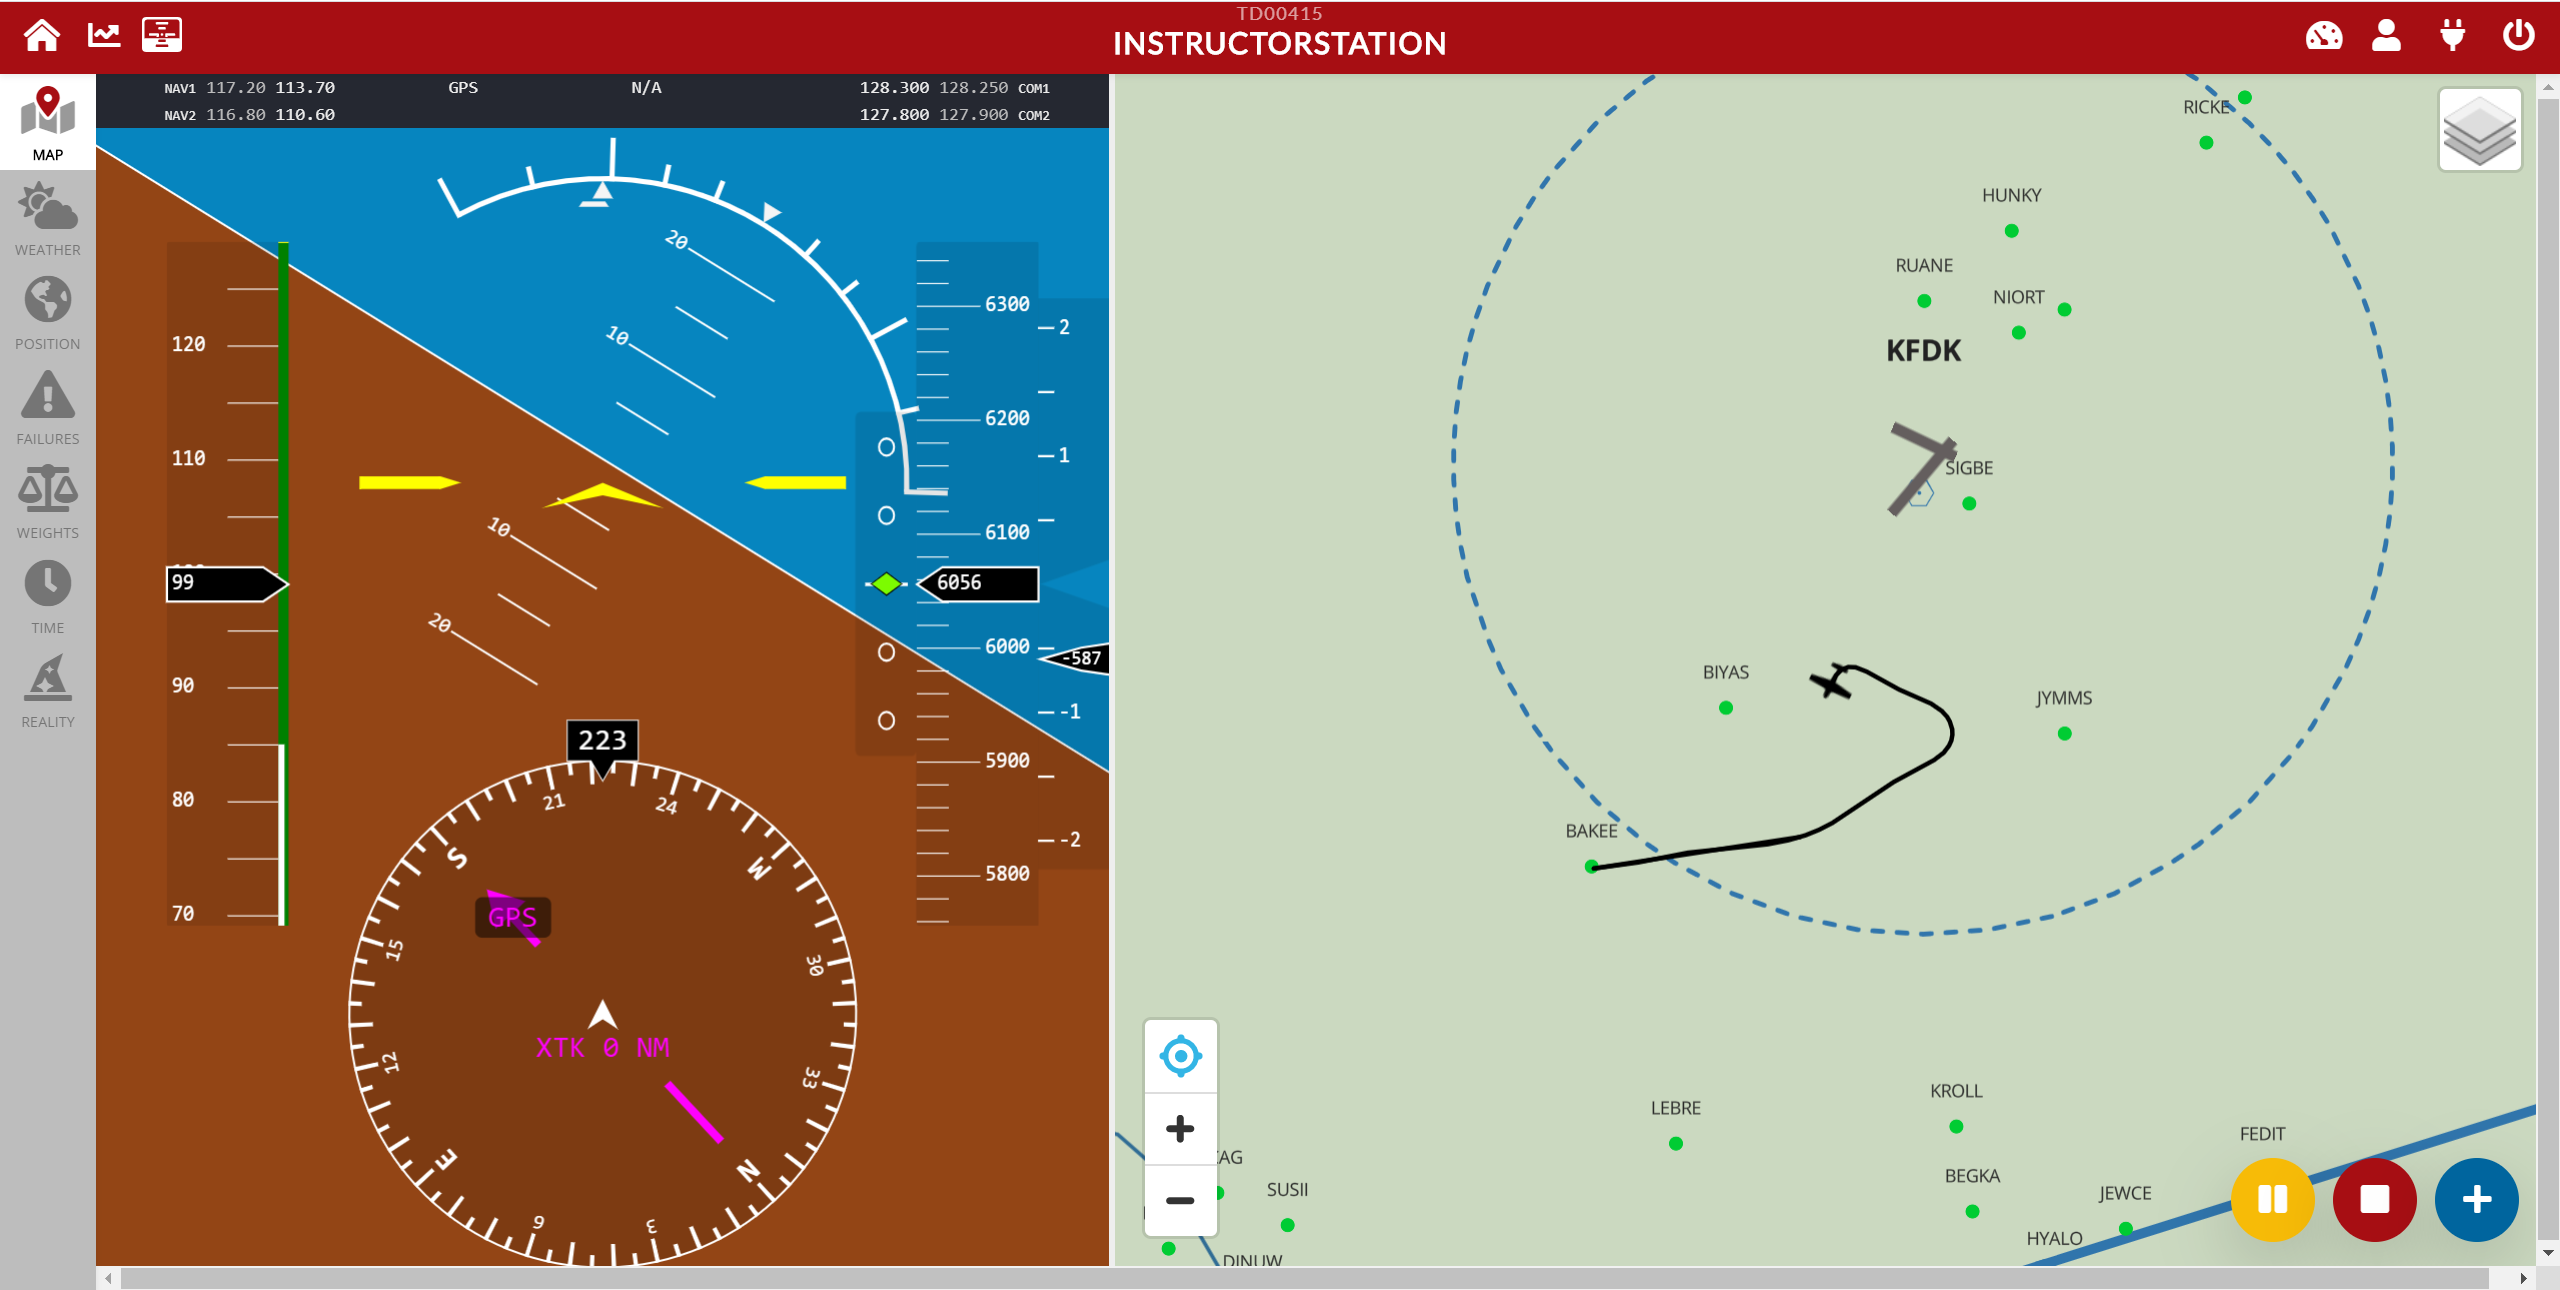 Redbird Offers Free Access to a New Solution for Remote Flight Instruction